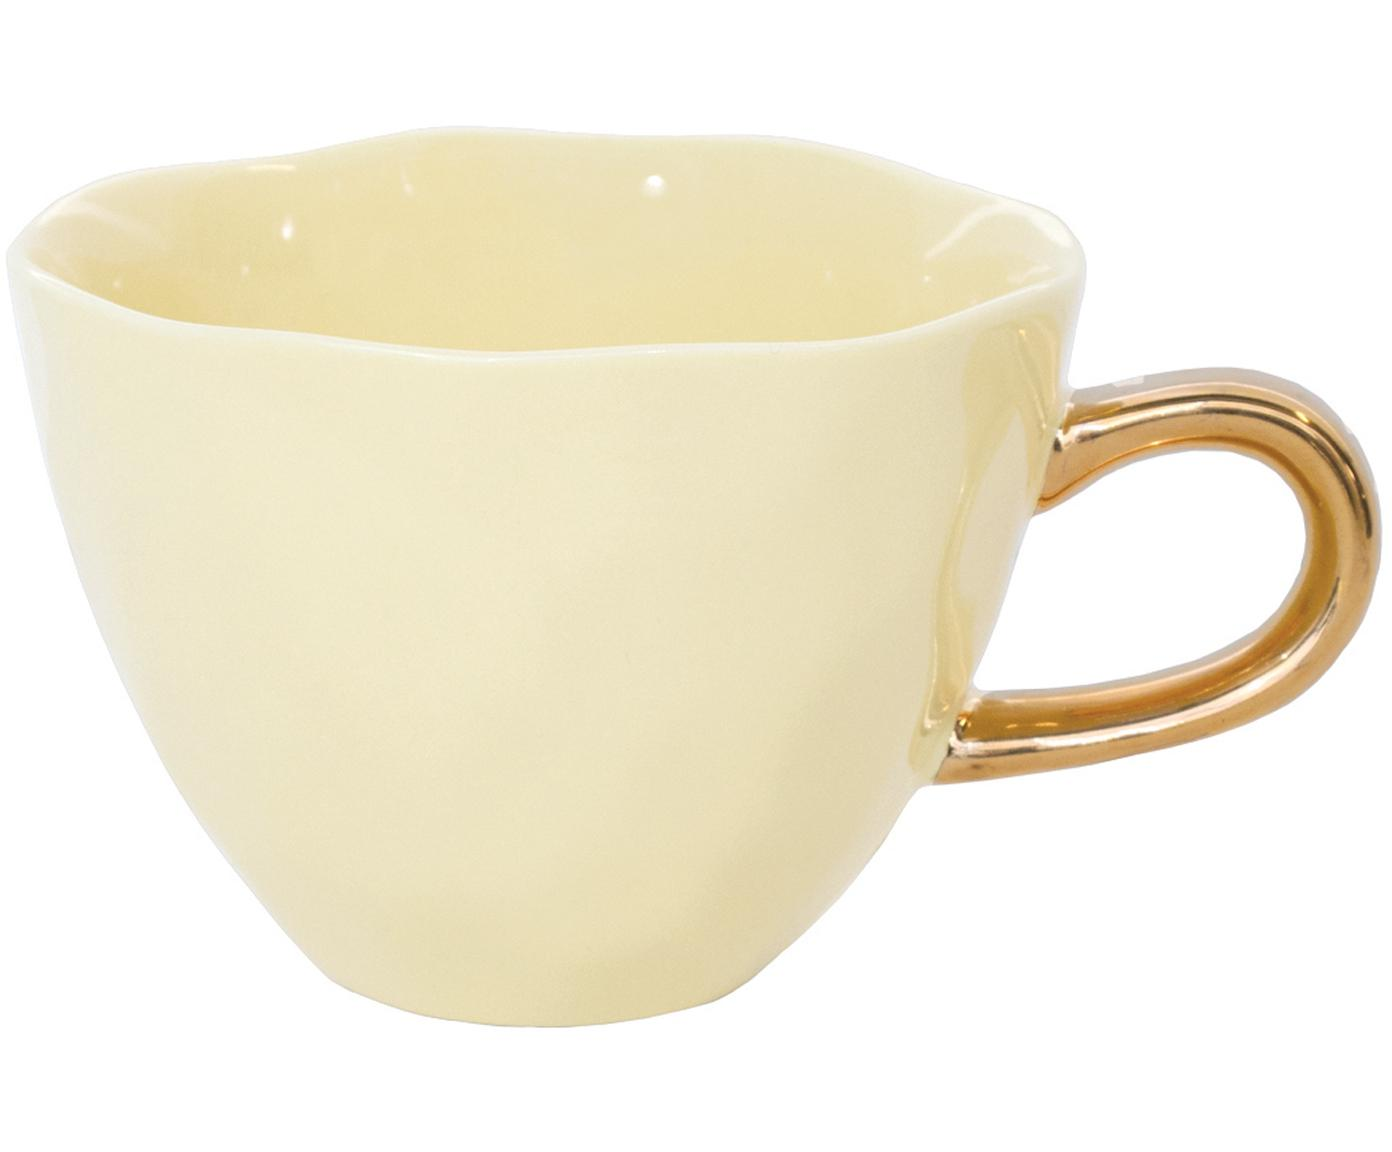 Tazza con manico dorato Good Morning, Terracotta, Giallo, dorato, Ø 11 x Alt. 8 cm